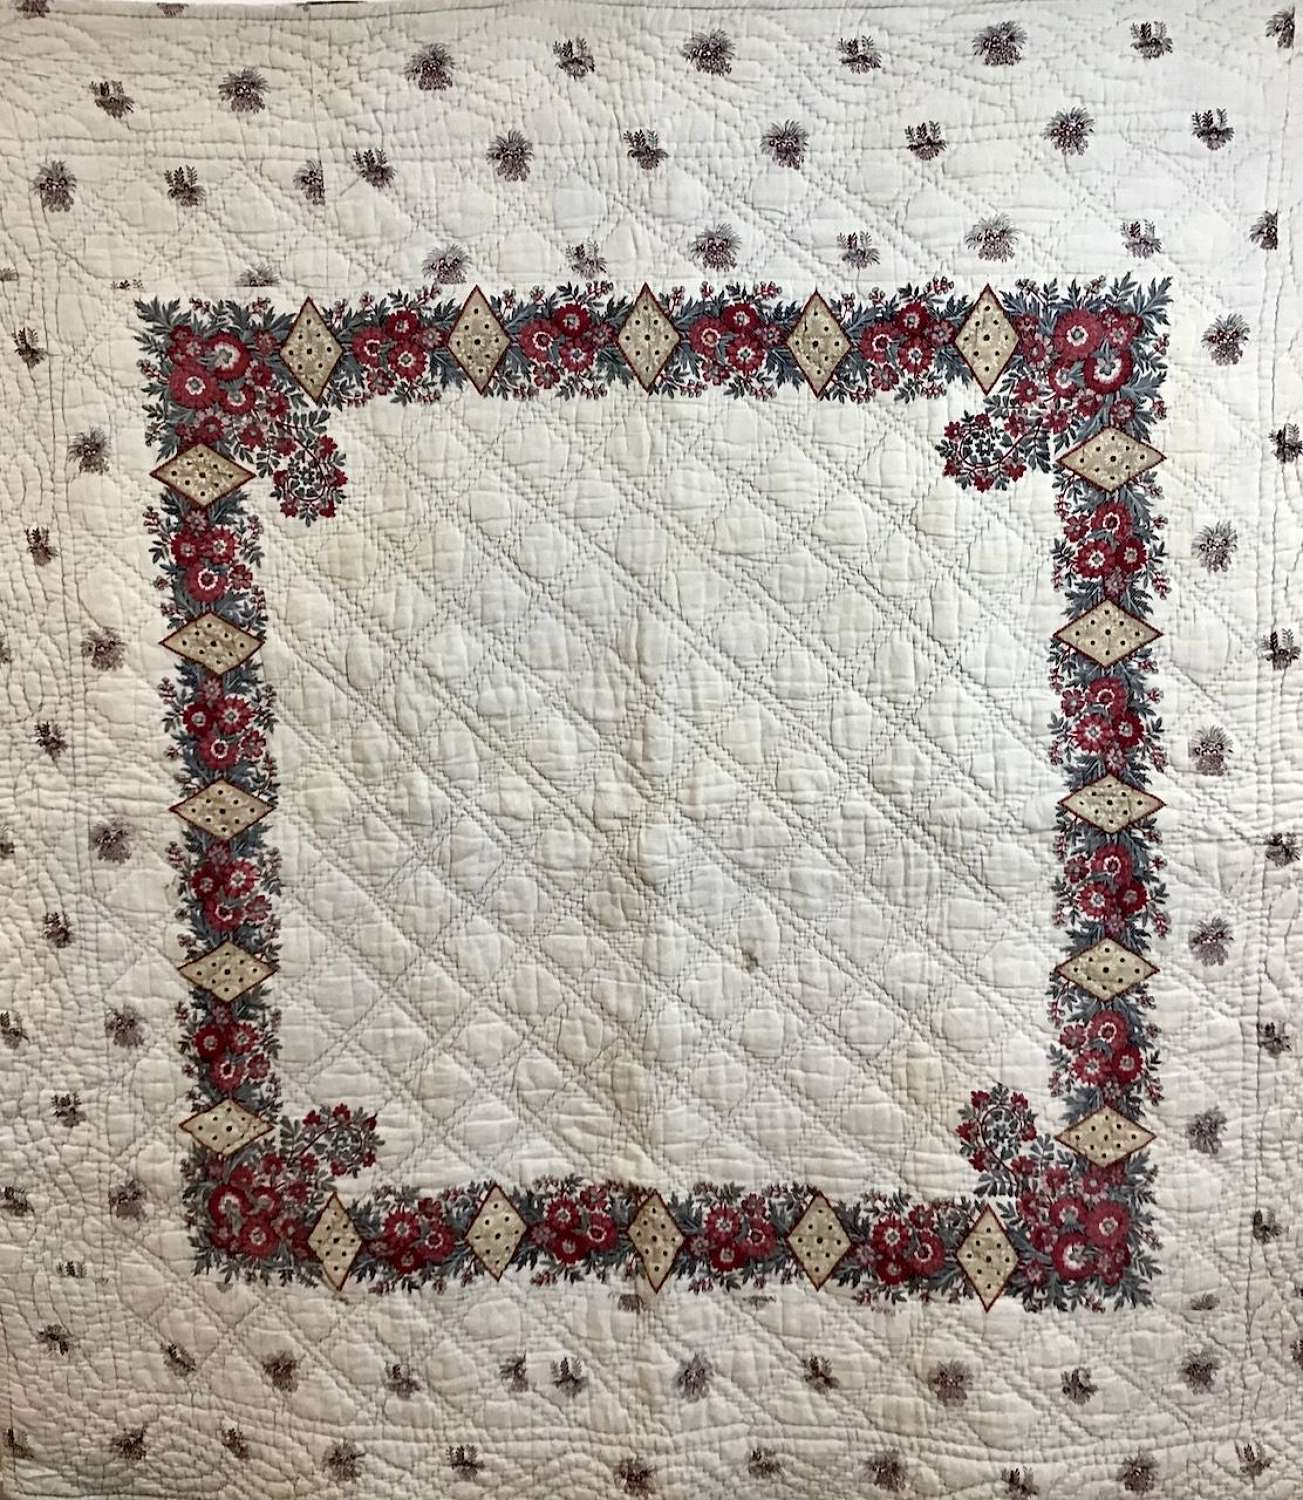 Fichu Cotton Quilt French 18th Century